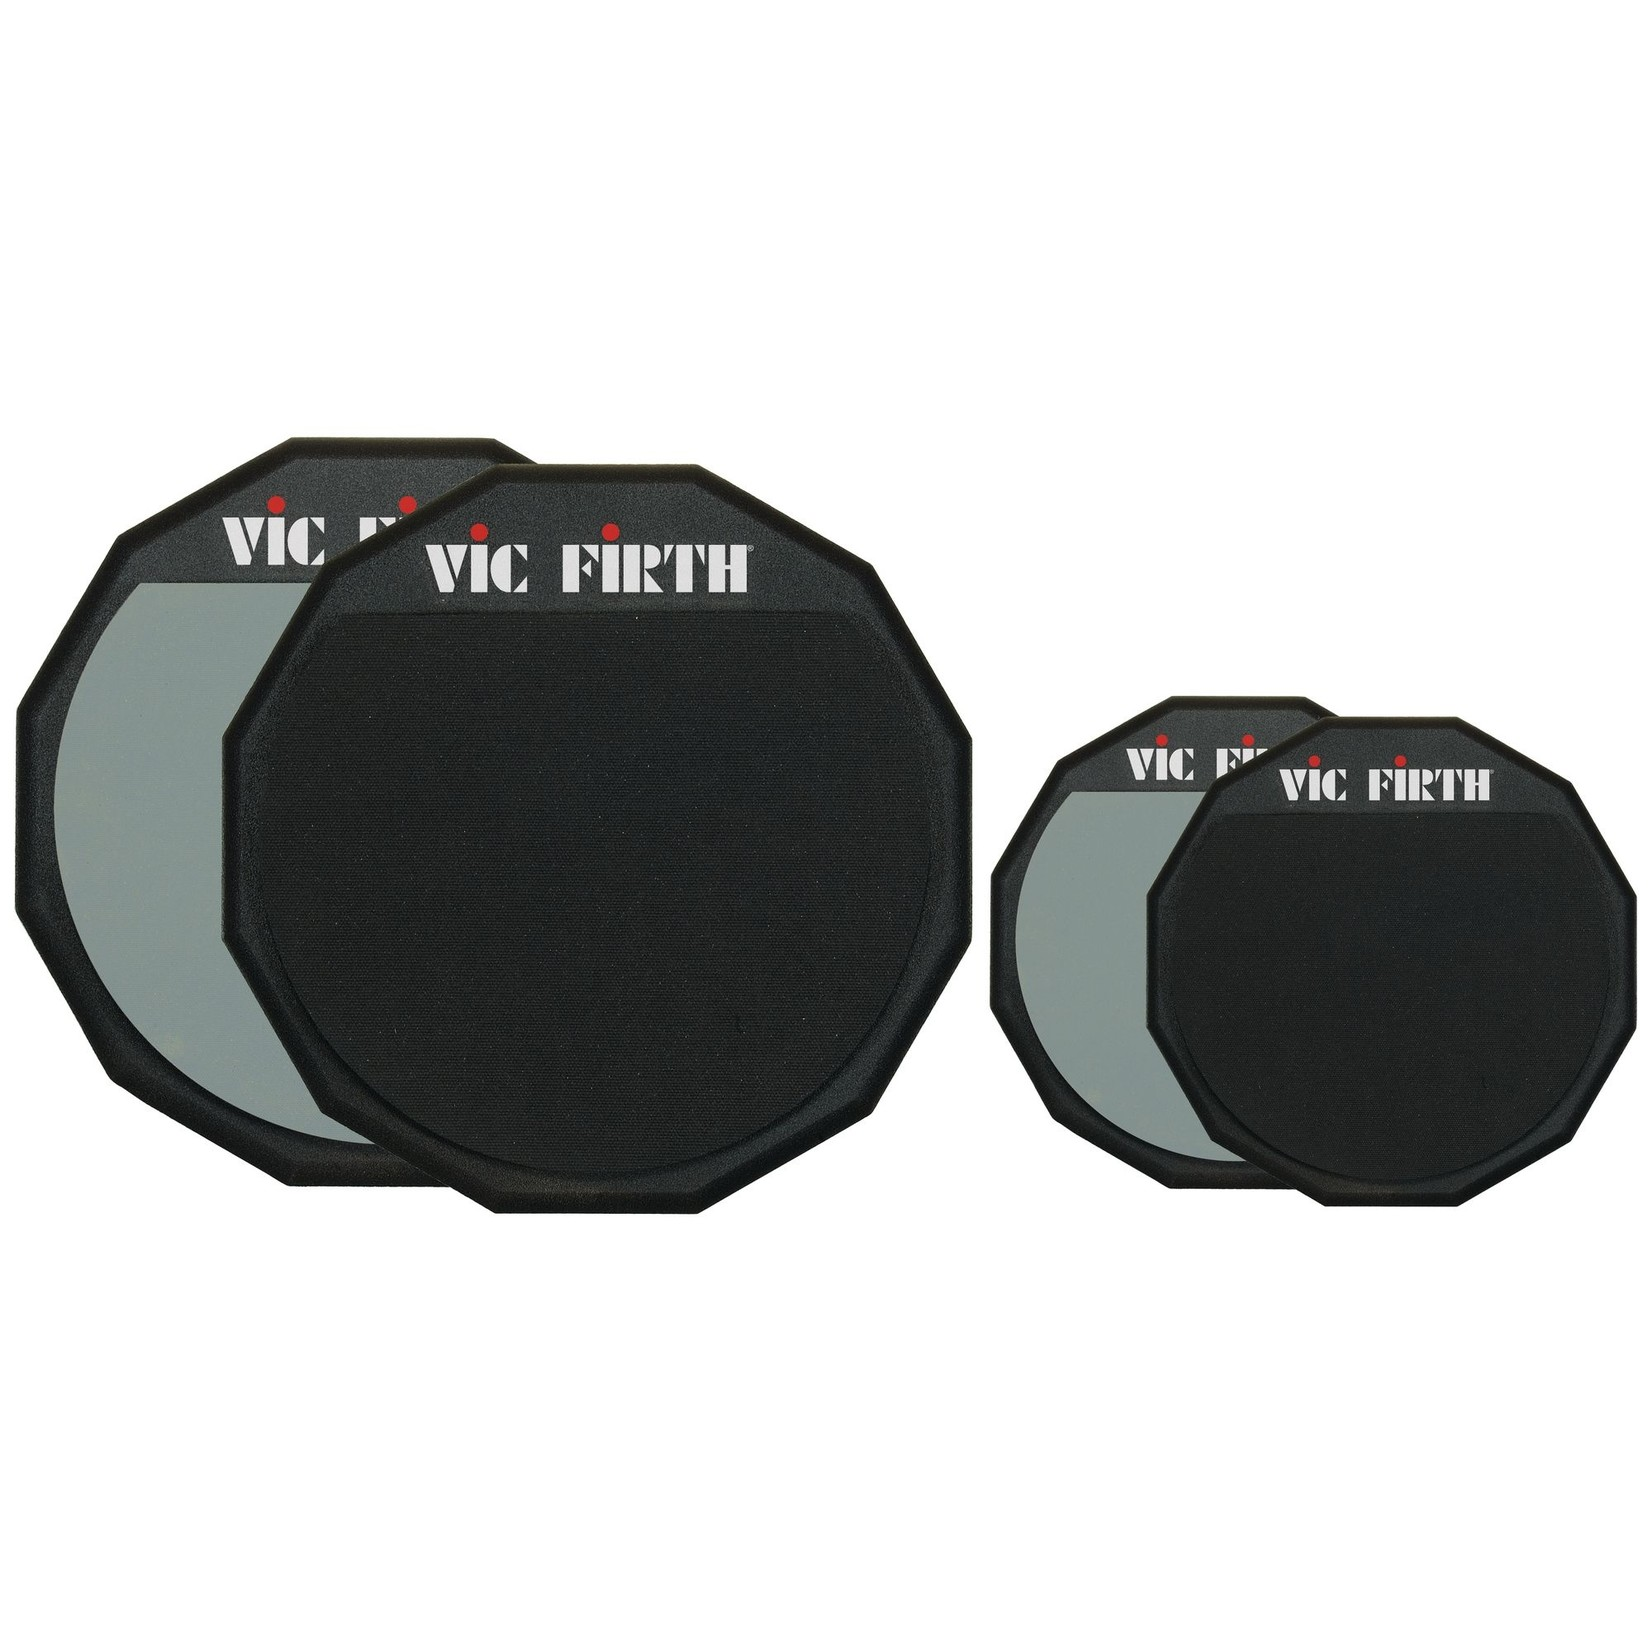 "Vic Firth Vic Firth 6"" Double-Sided Practice Pad"